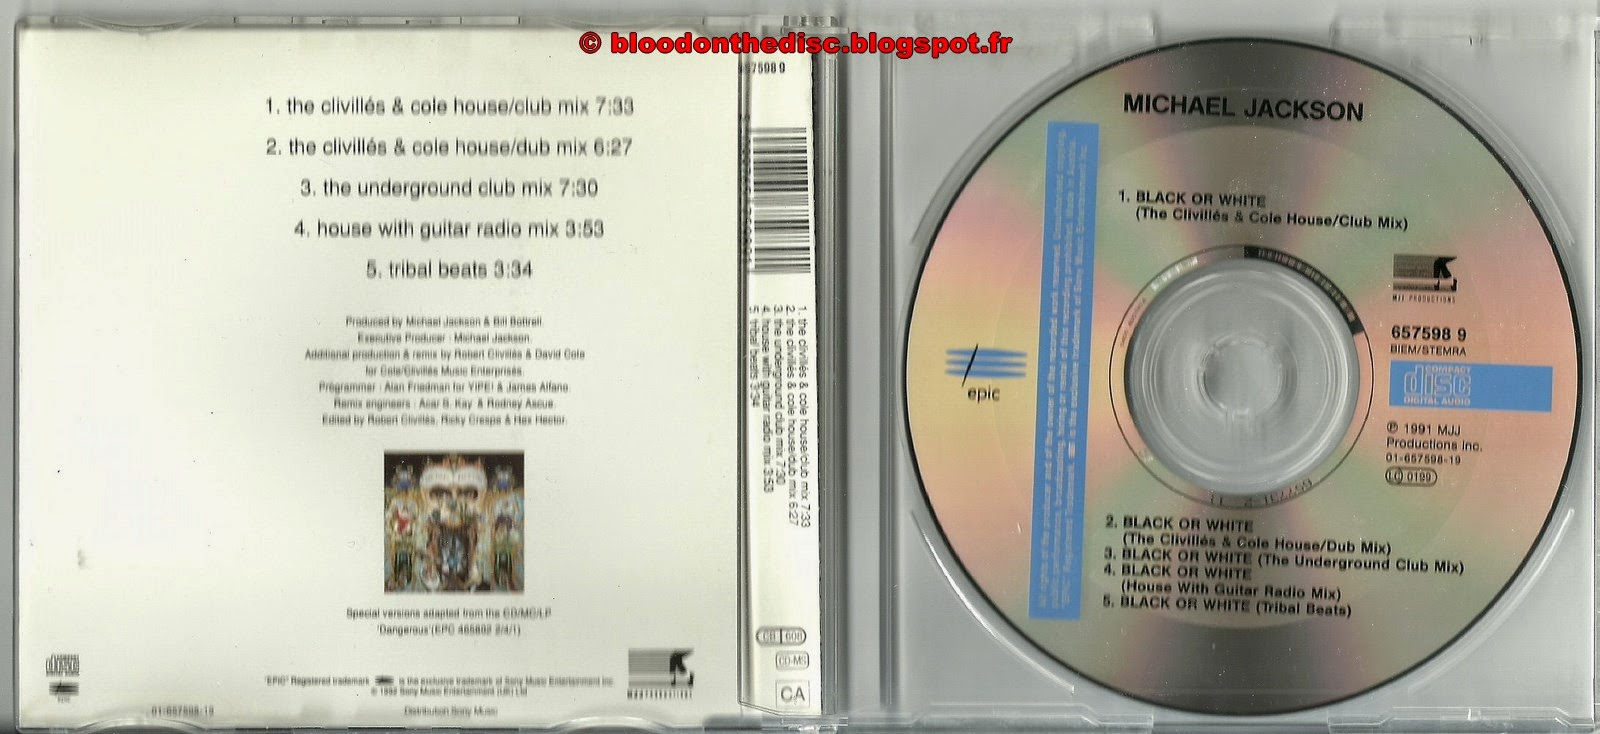 Bow maxi cd Clivillés & Coles Remixes